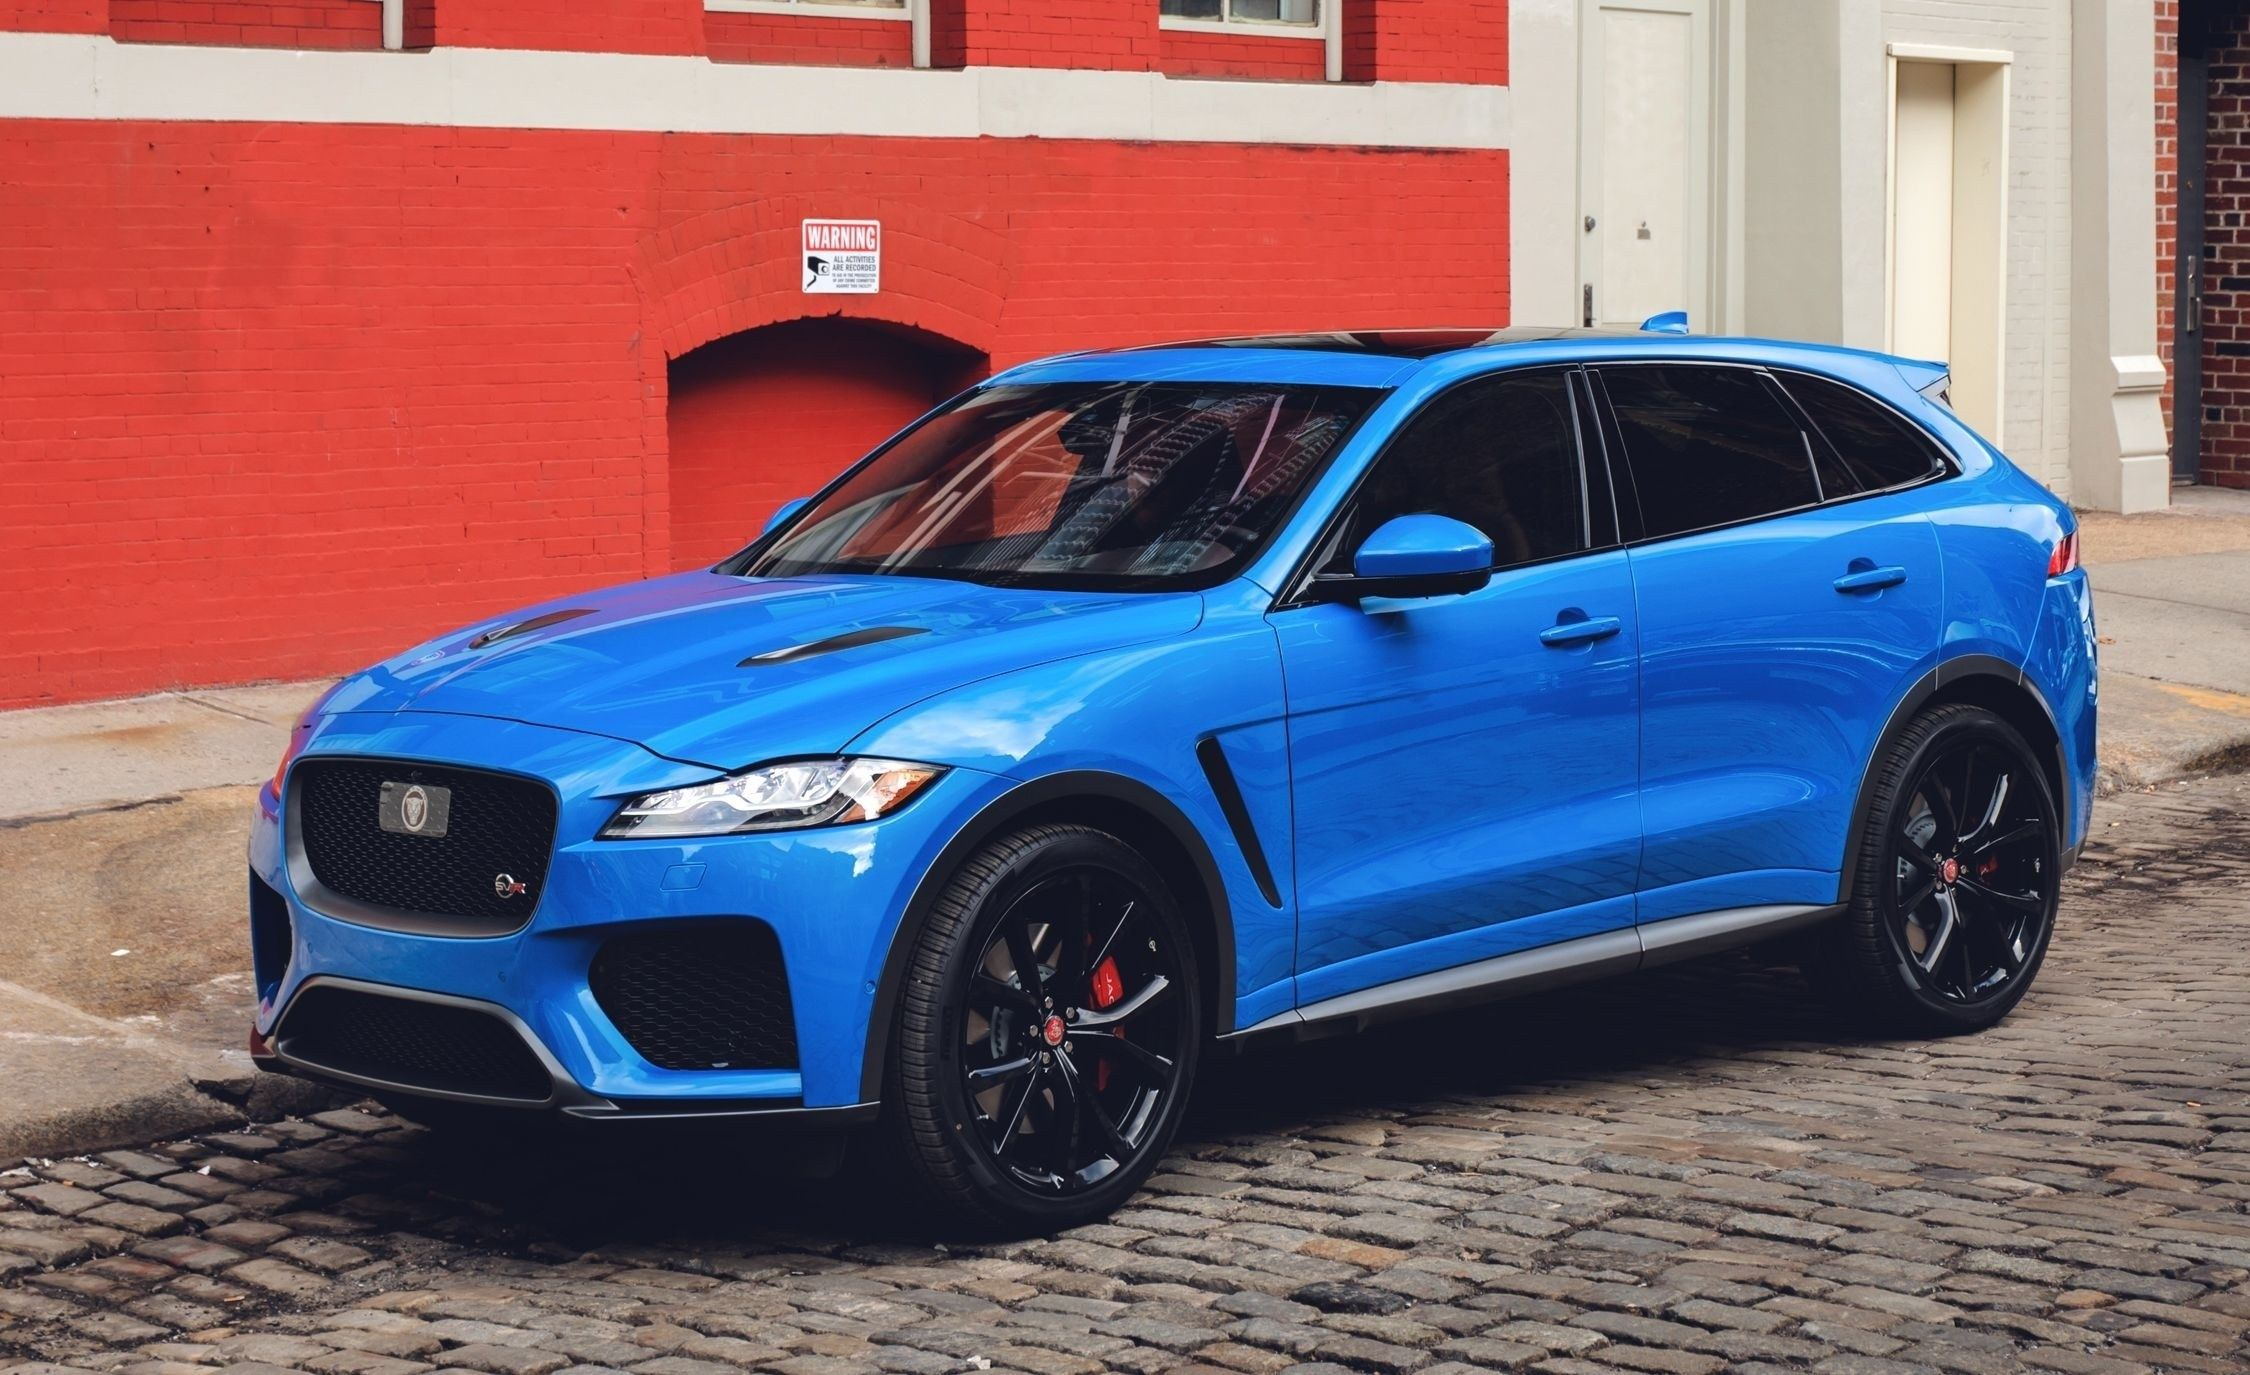 New 2020 Jaguar F Pace Svr Spy Shoot Jaguar Jaguar E Upcoming Cars